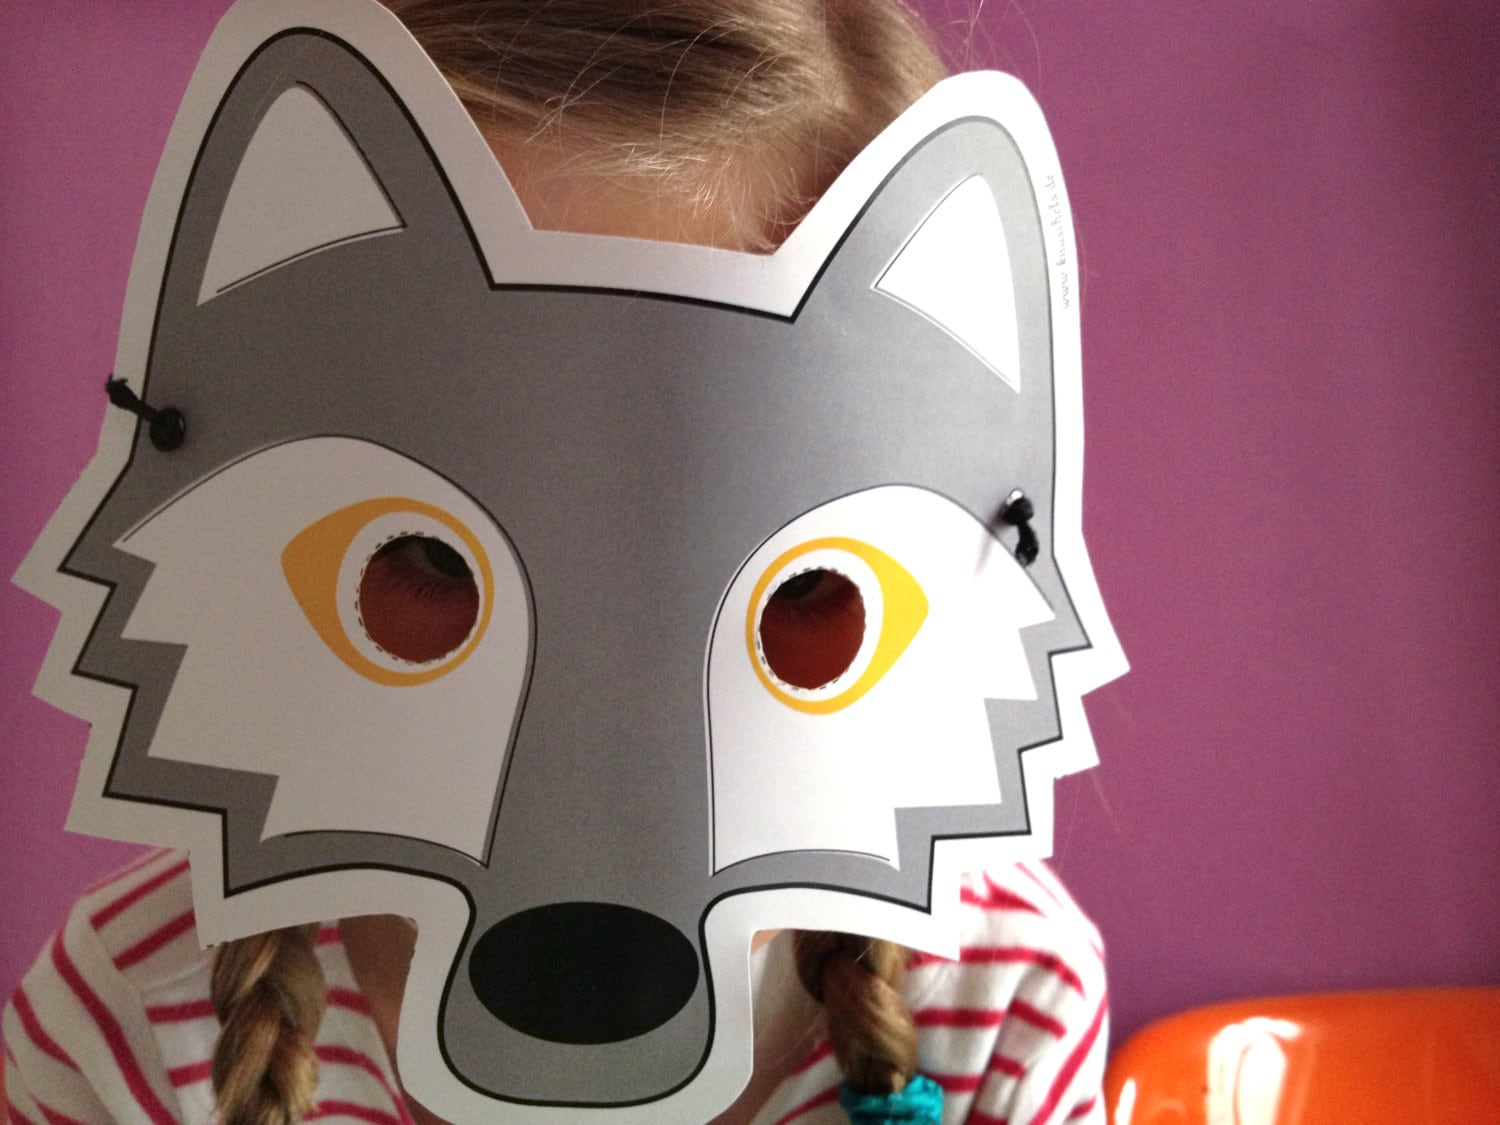 image relating to Printable Wolf Mask identified as Wolf Mask Template Printable. printable wolf mask template